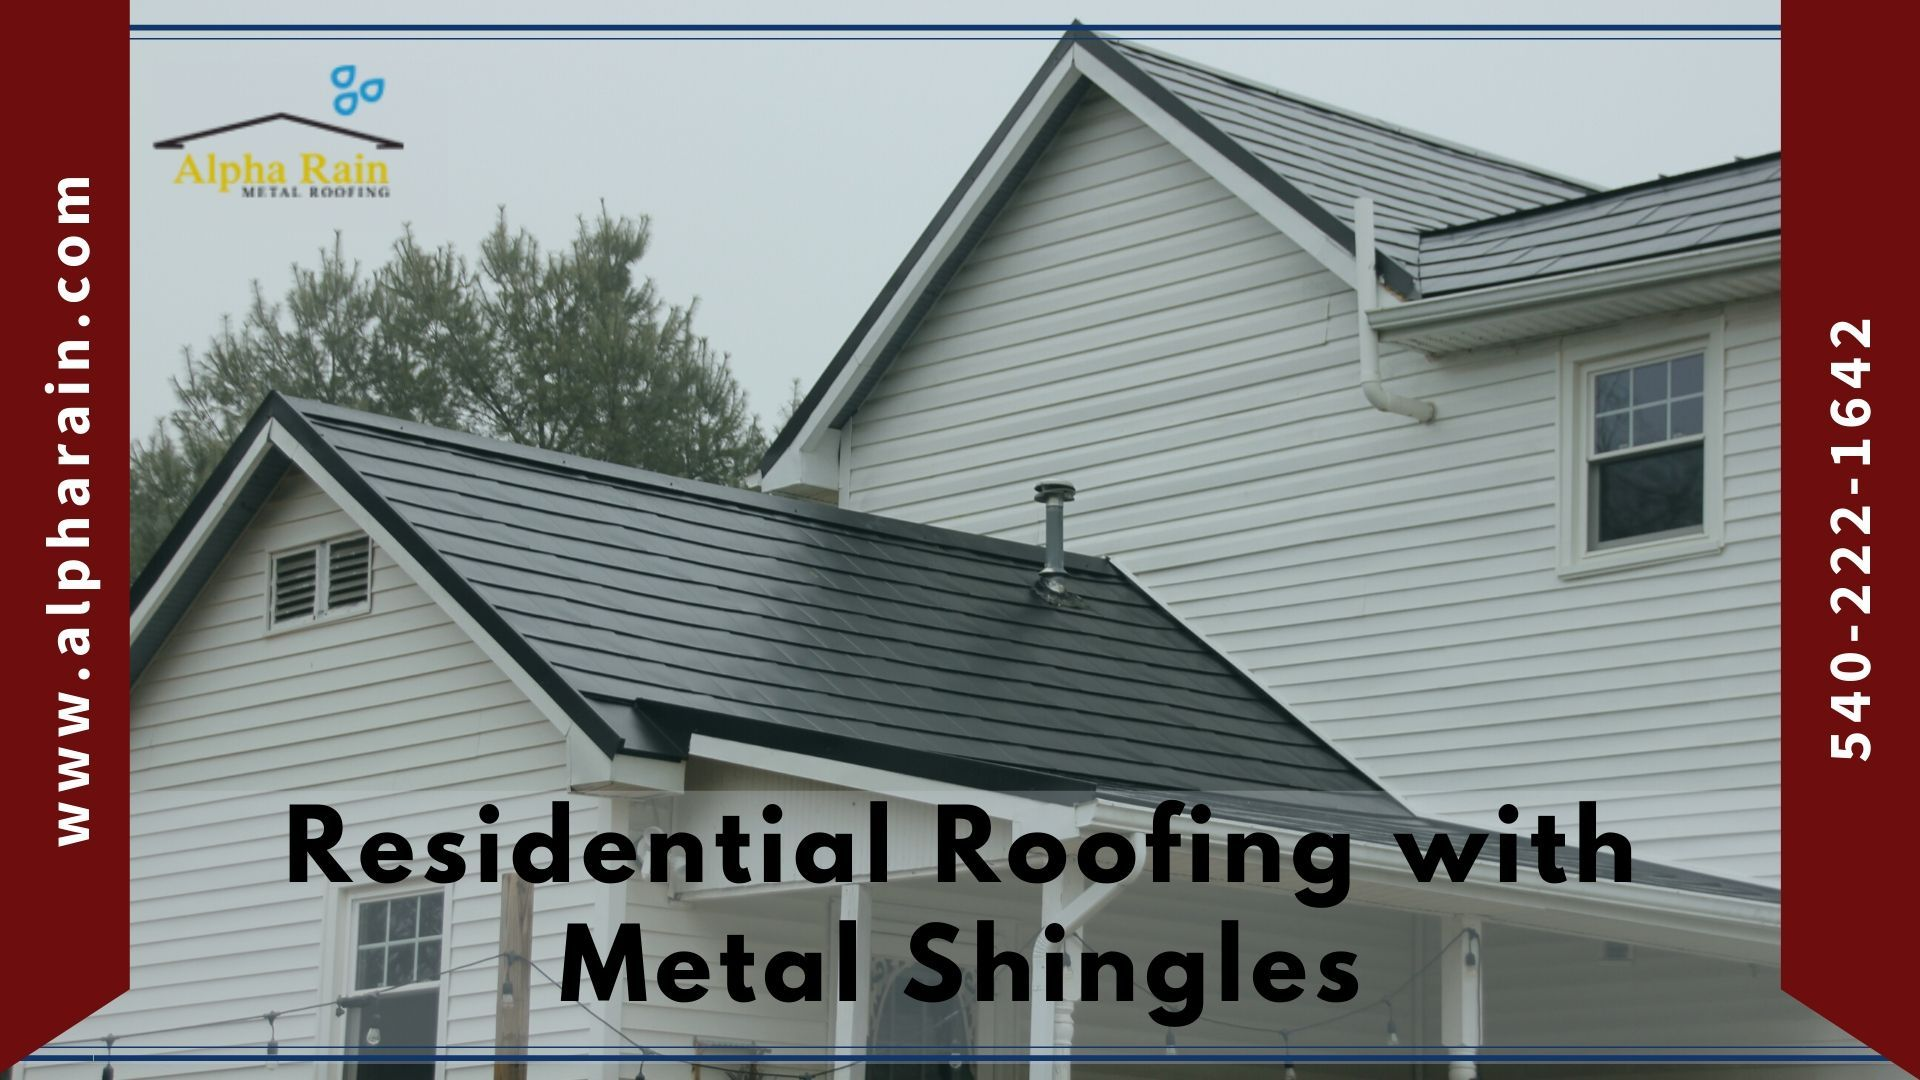 Residential Roofing With Metal Shingles Alpha Rain In 2020 Metal Shingles Residential Roofing Roofing